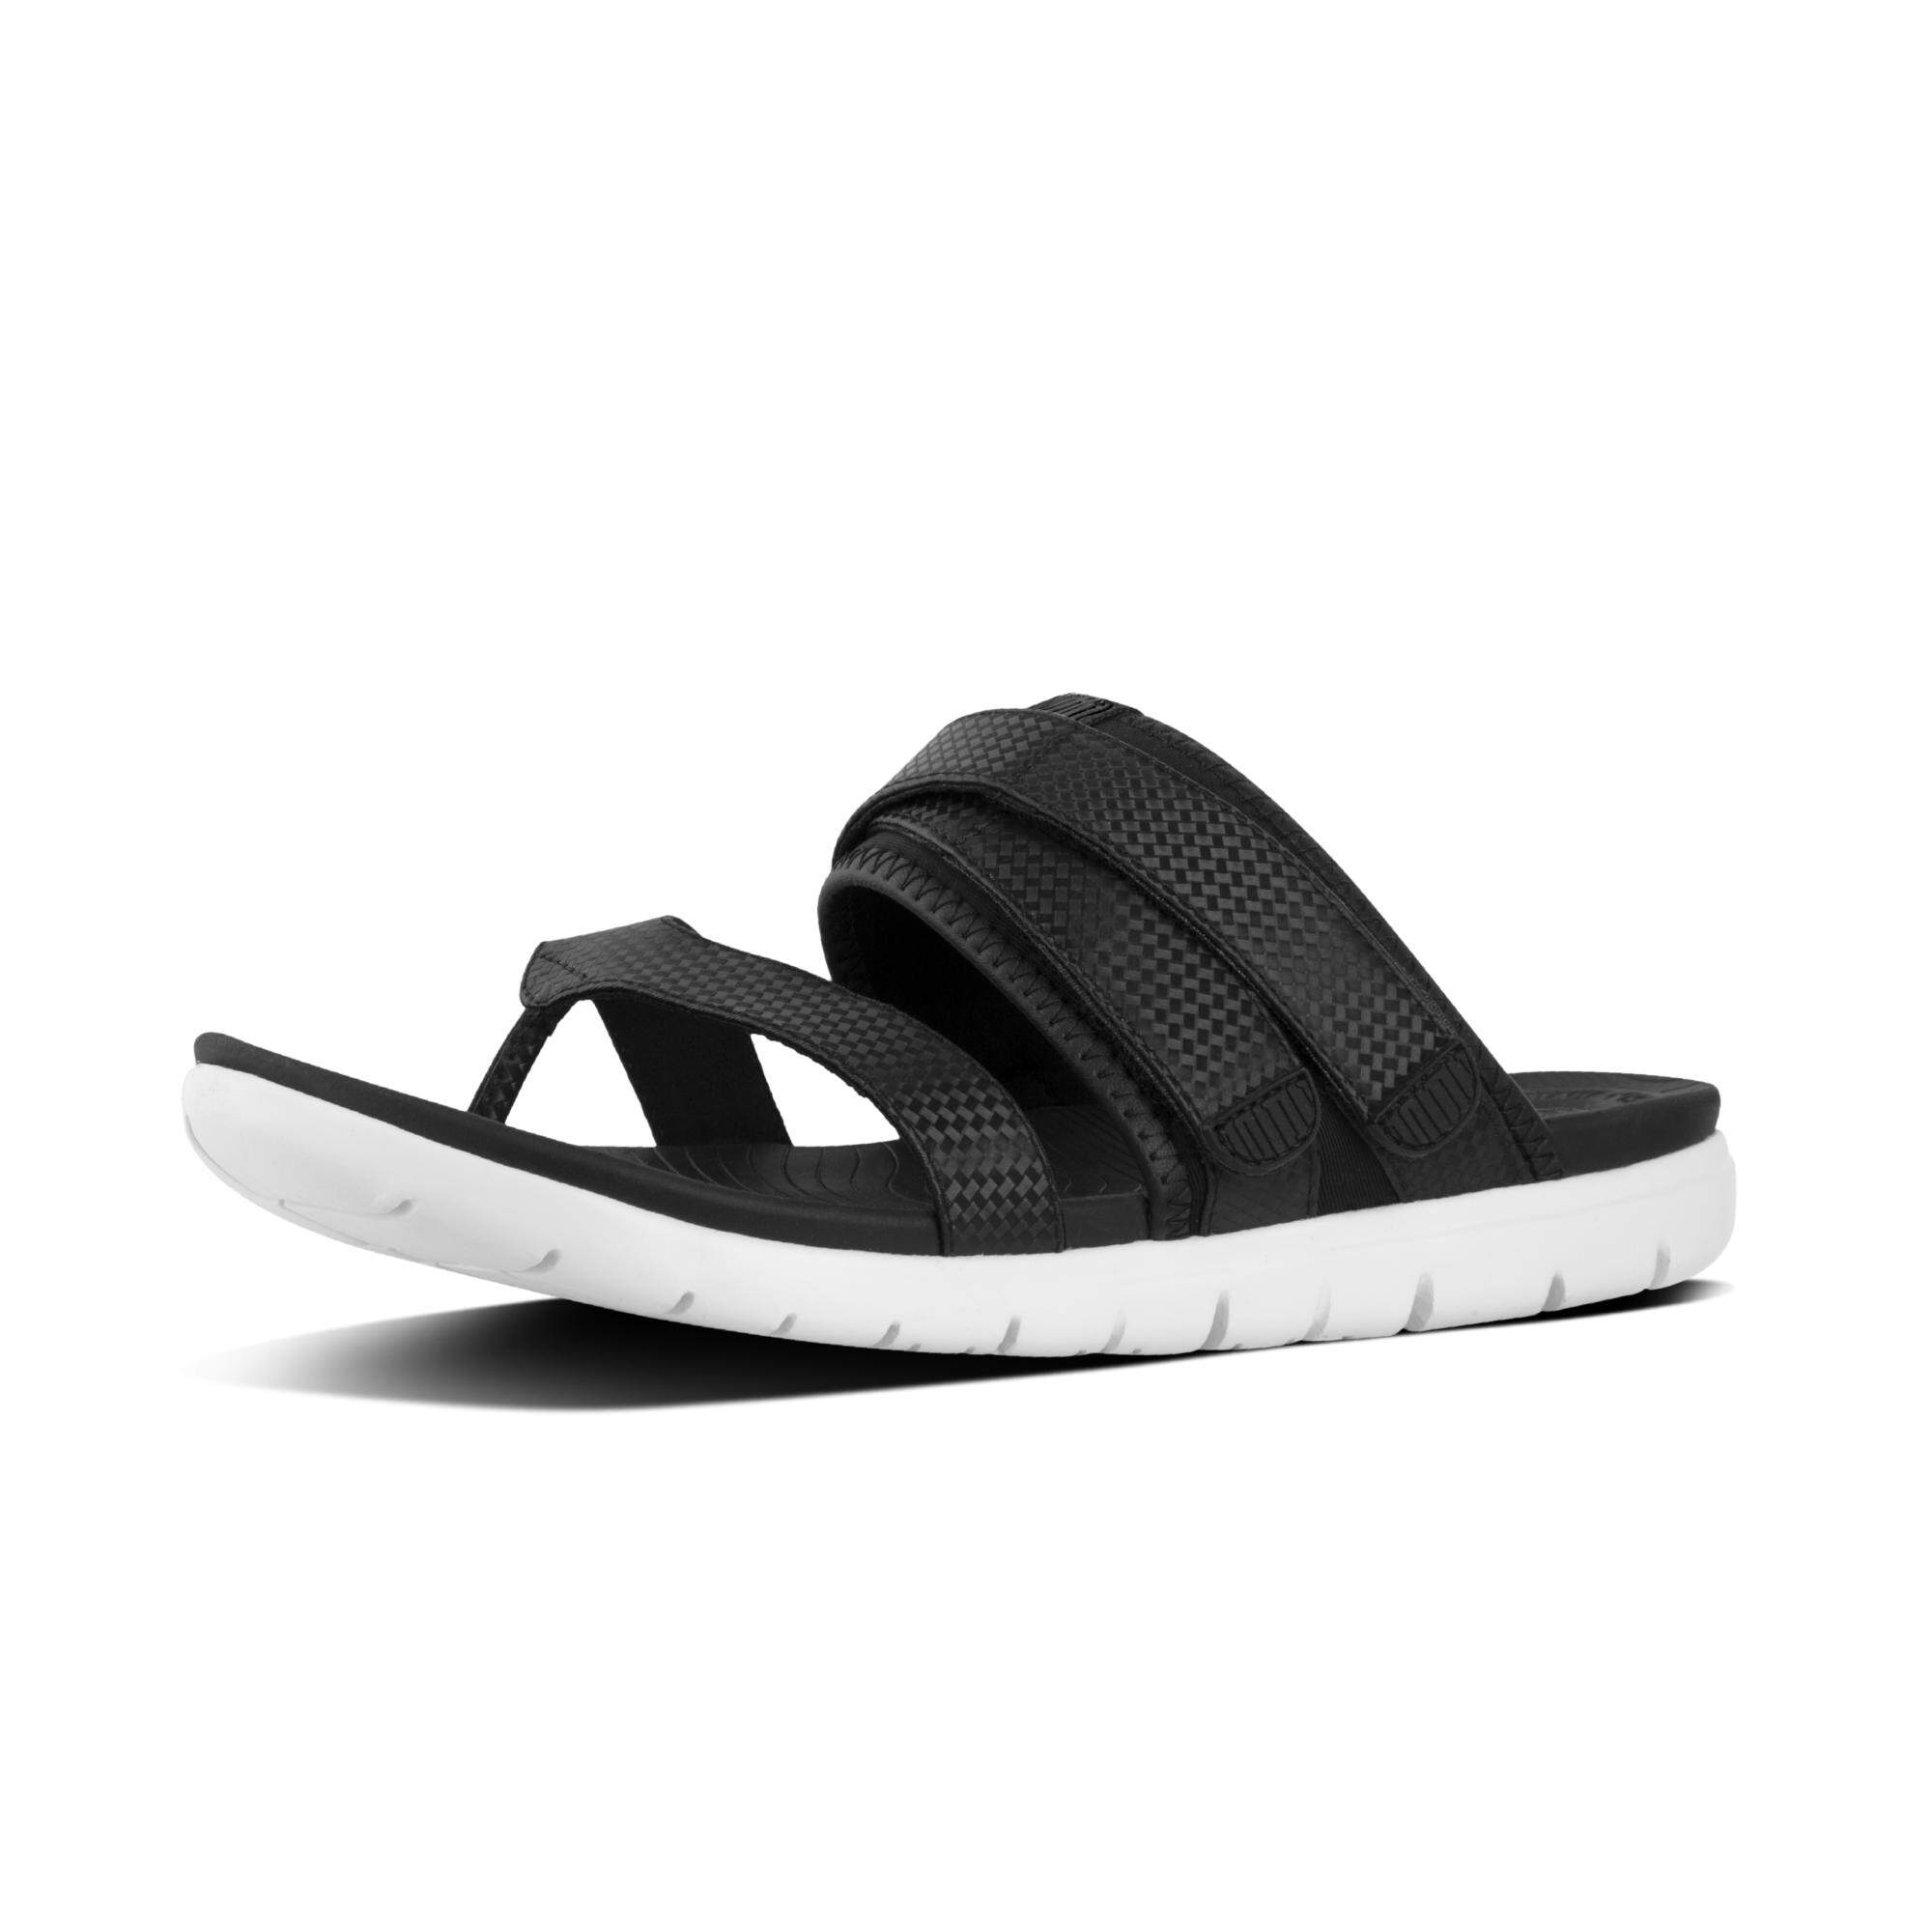 8bf1ddd179b Popular Fitflop Sandals for the Best Prices in Malaysia